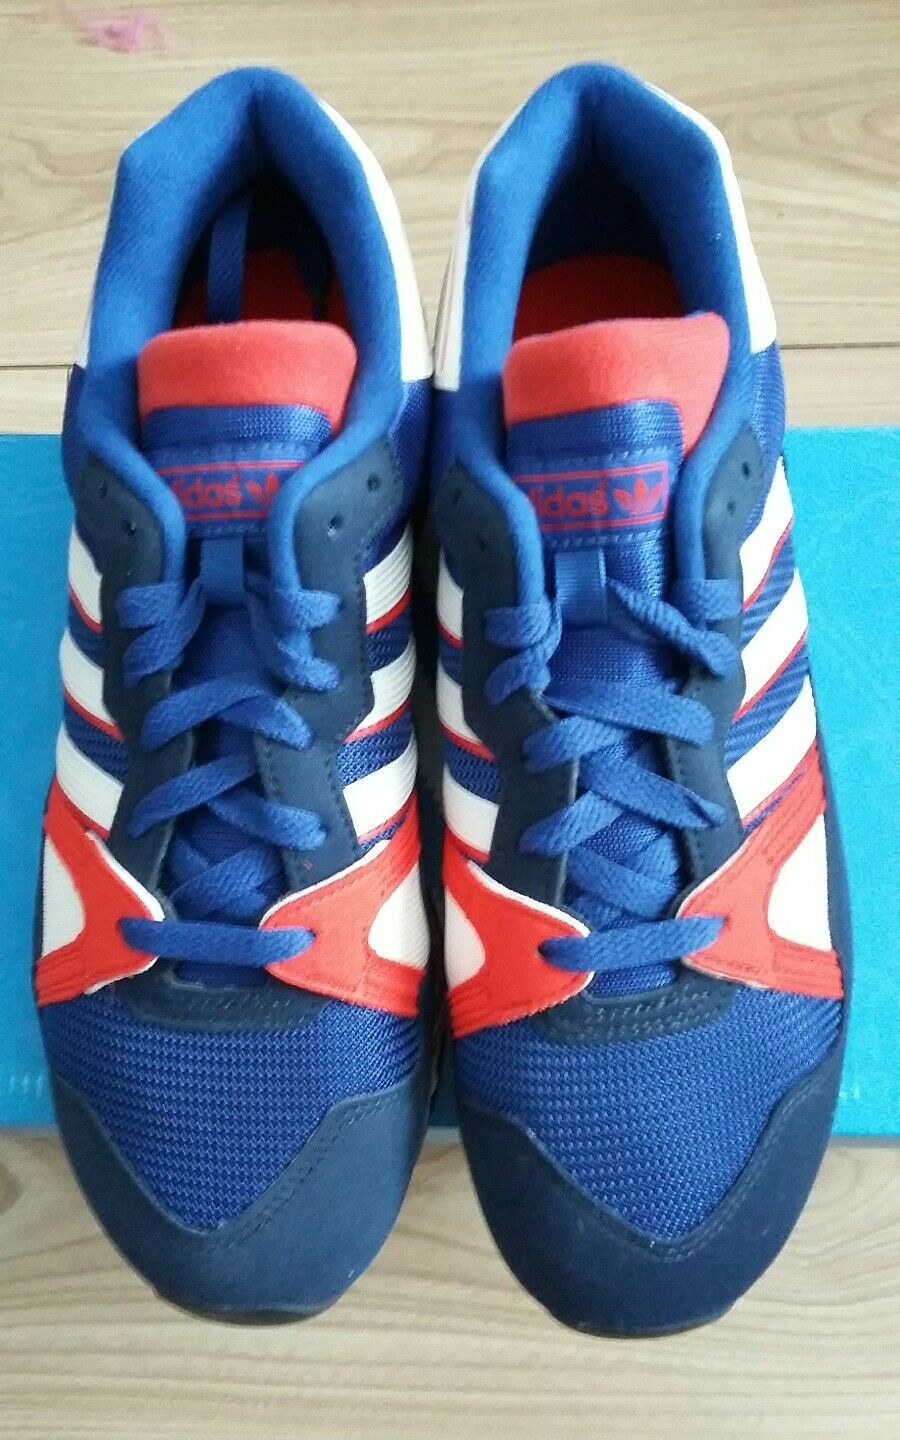 Adidas ZX710 UK8.5 Suede Dead Blau ROT WEISS Rare Dead Suede stock a83036